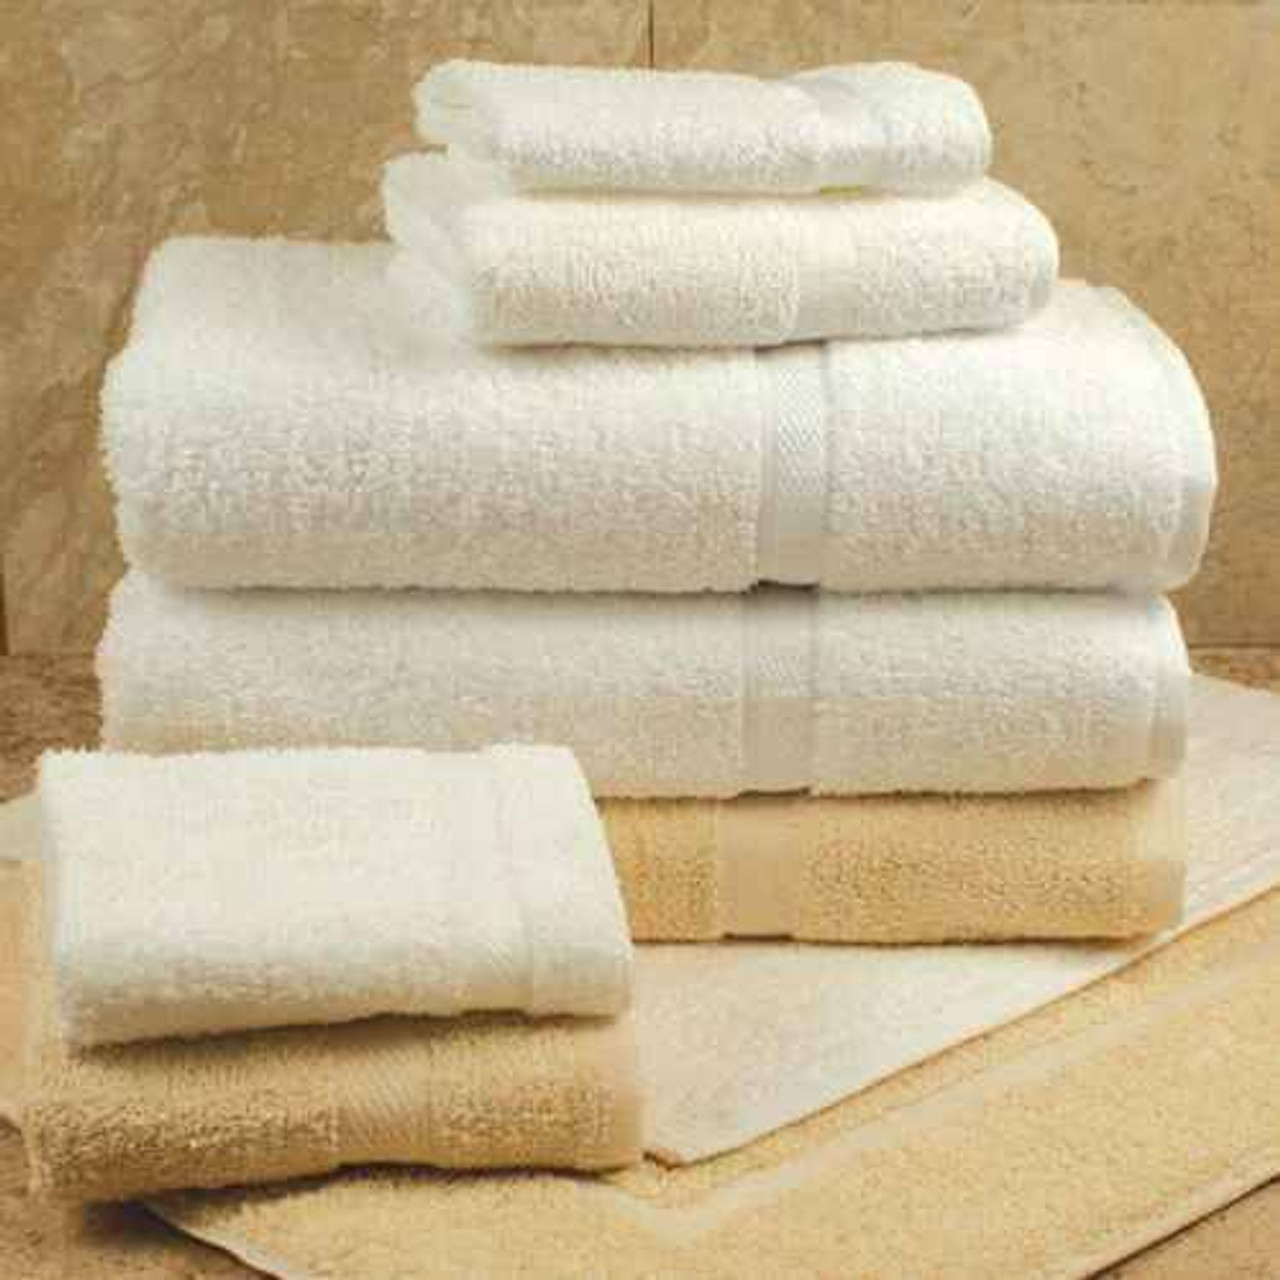 1888 Mills 1888 Mills or Heritage or Bath Linen or 48 - 300 Per Pack